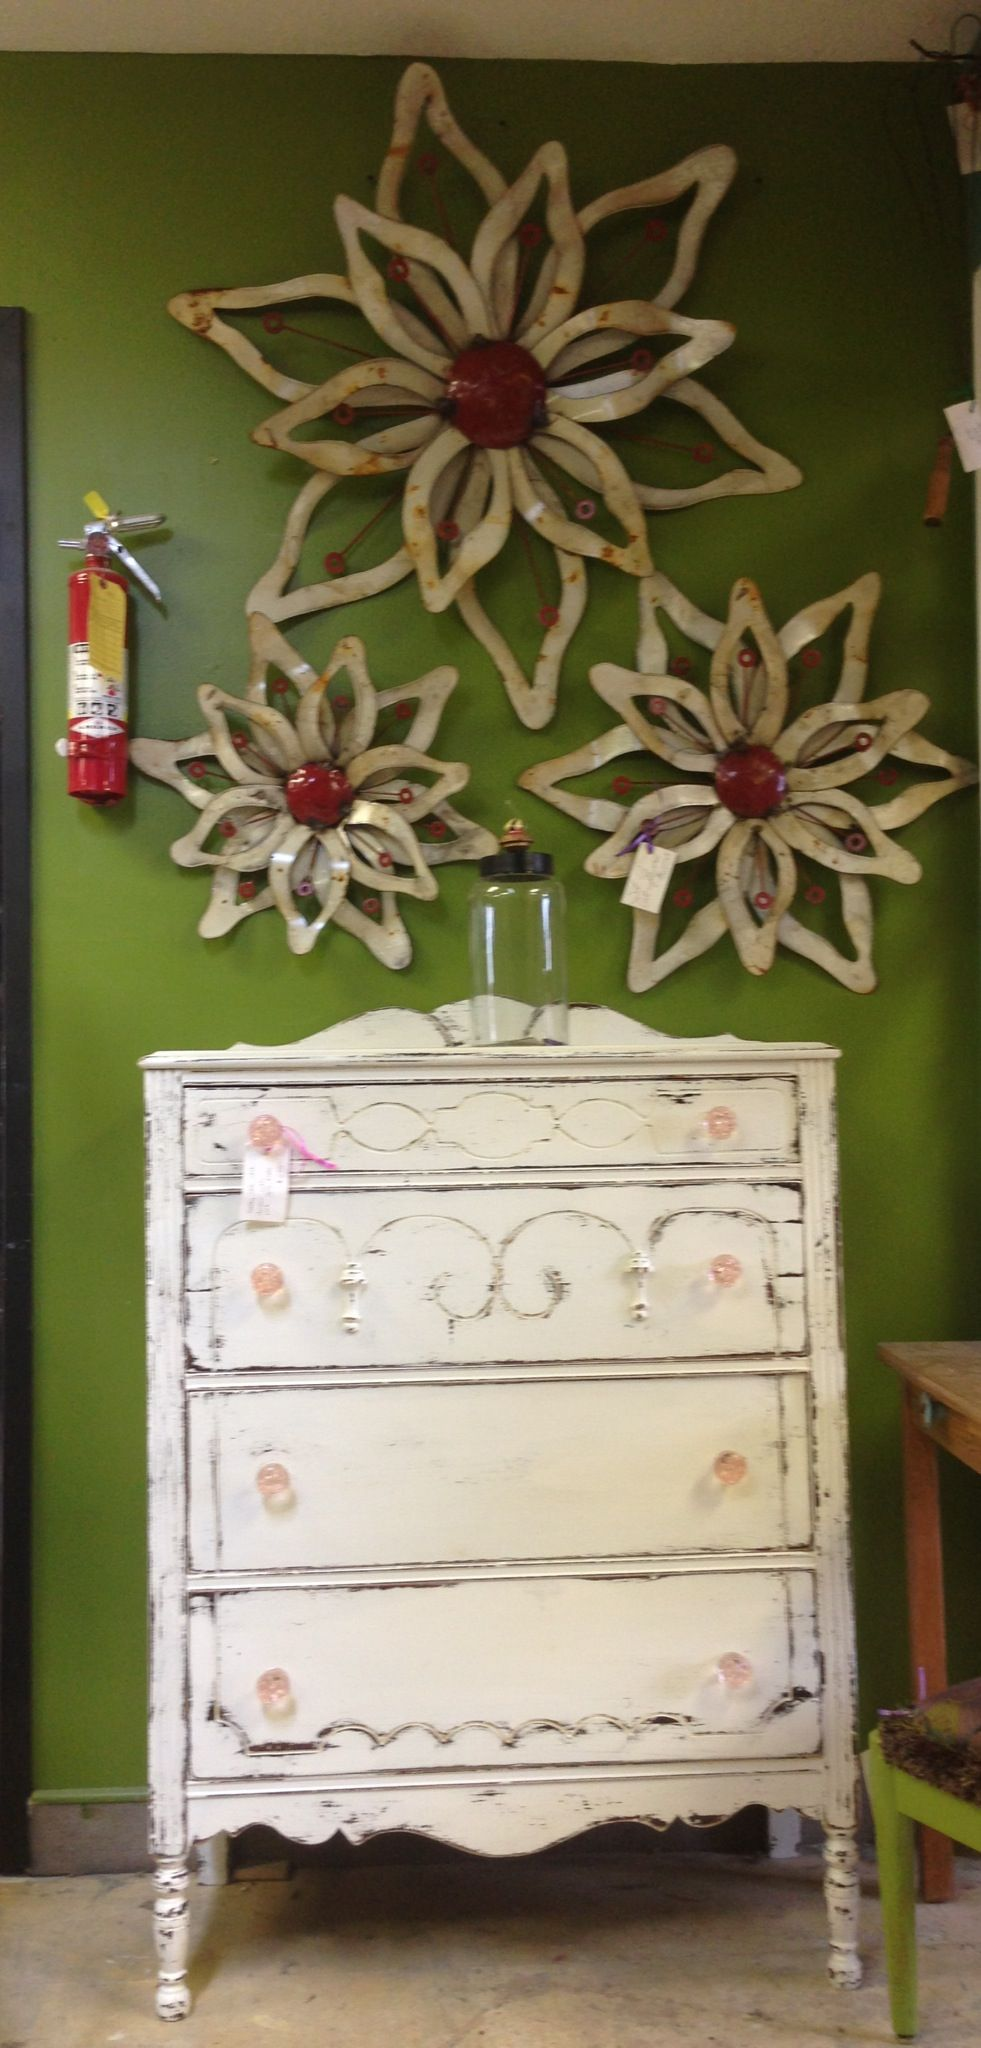 Awesome #repurposed dresser with amazing #homedecor flowers! #FM@F